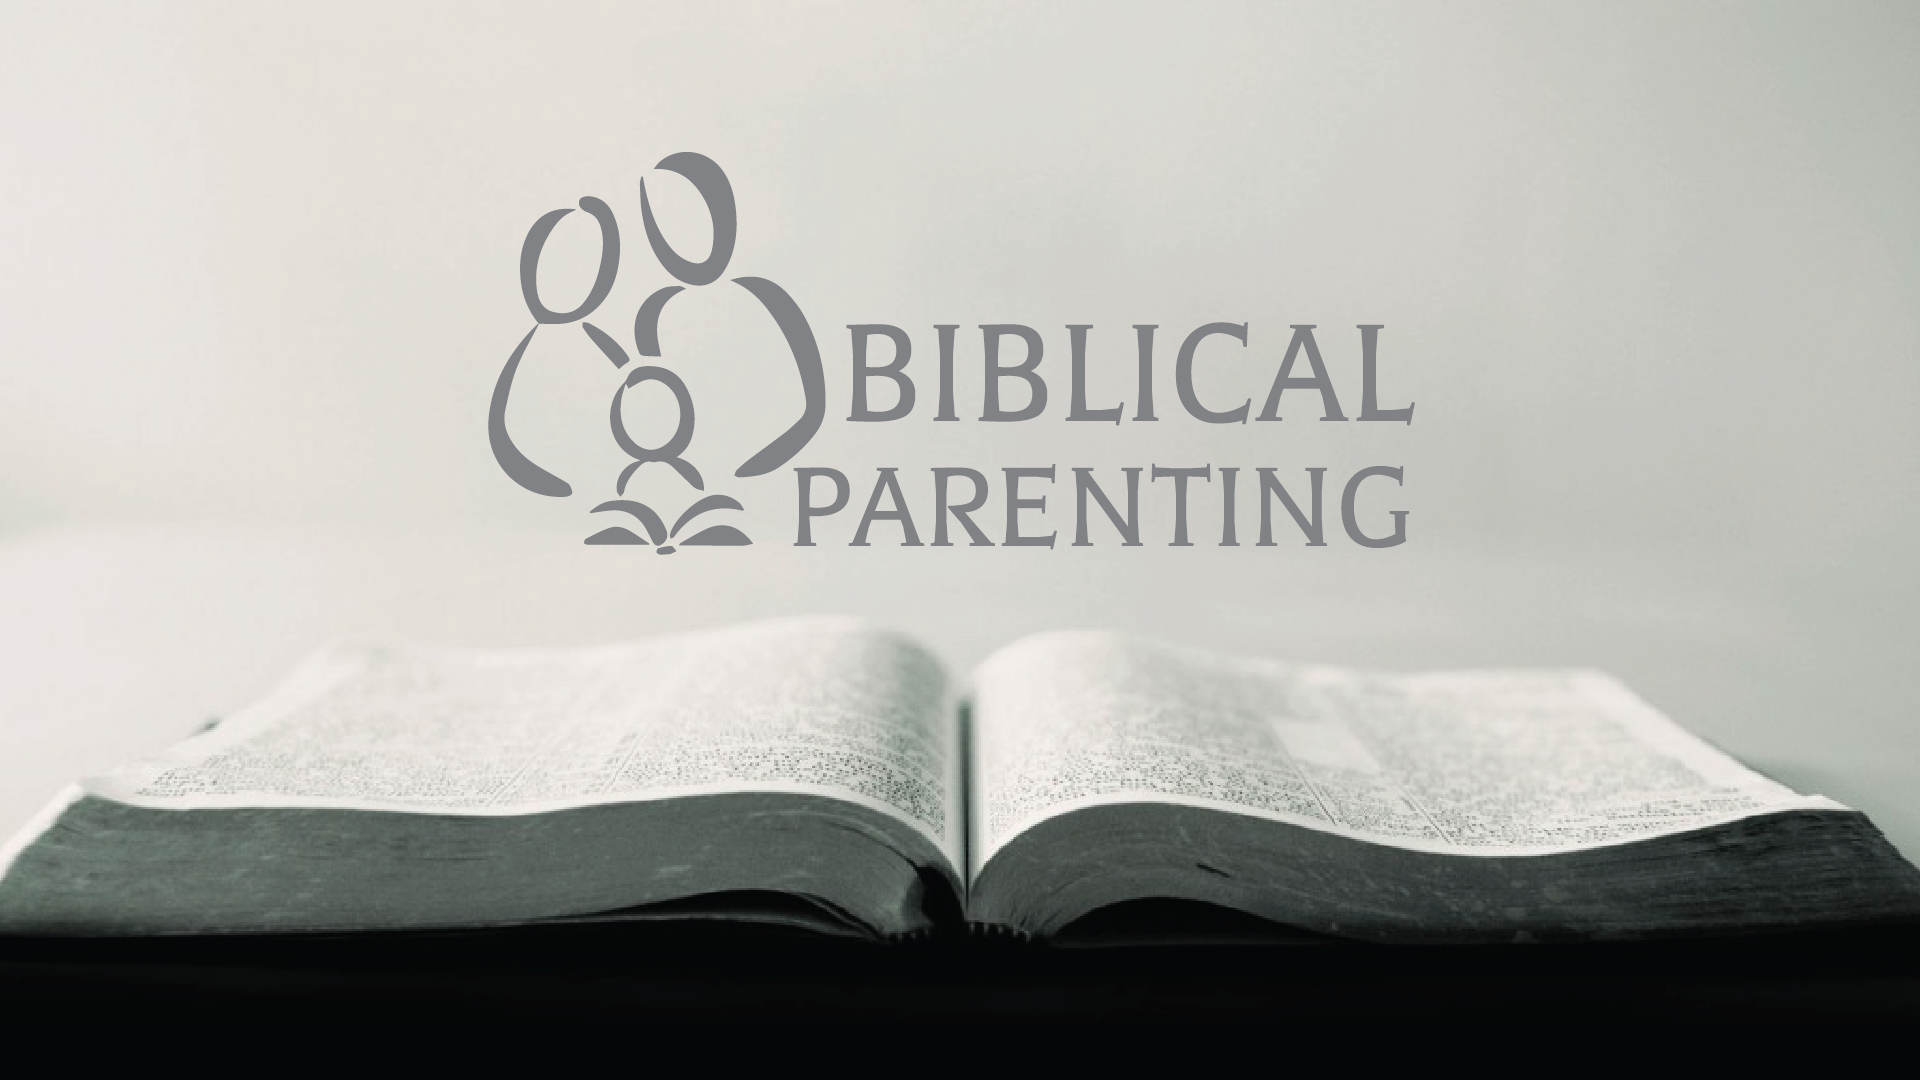 Find resources that can assist you in parenting your children and teenagers by Biblical standards.